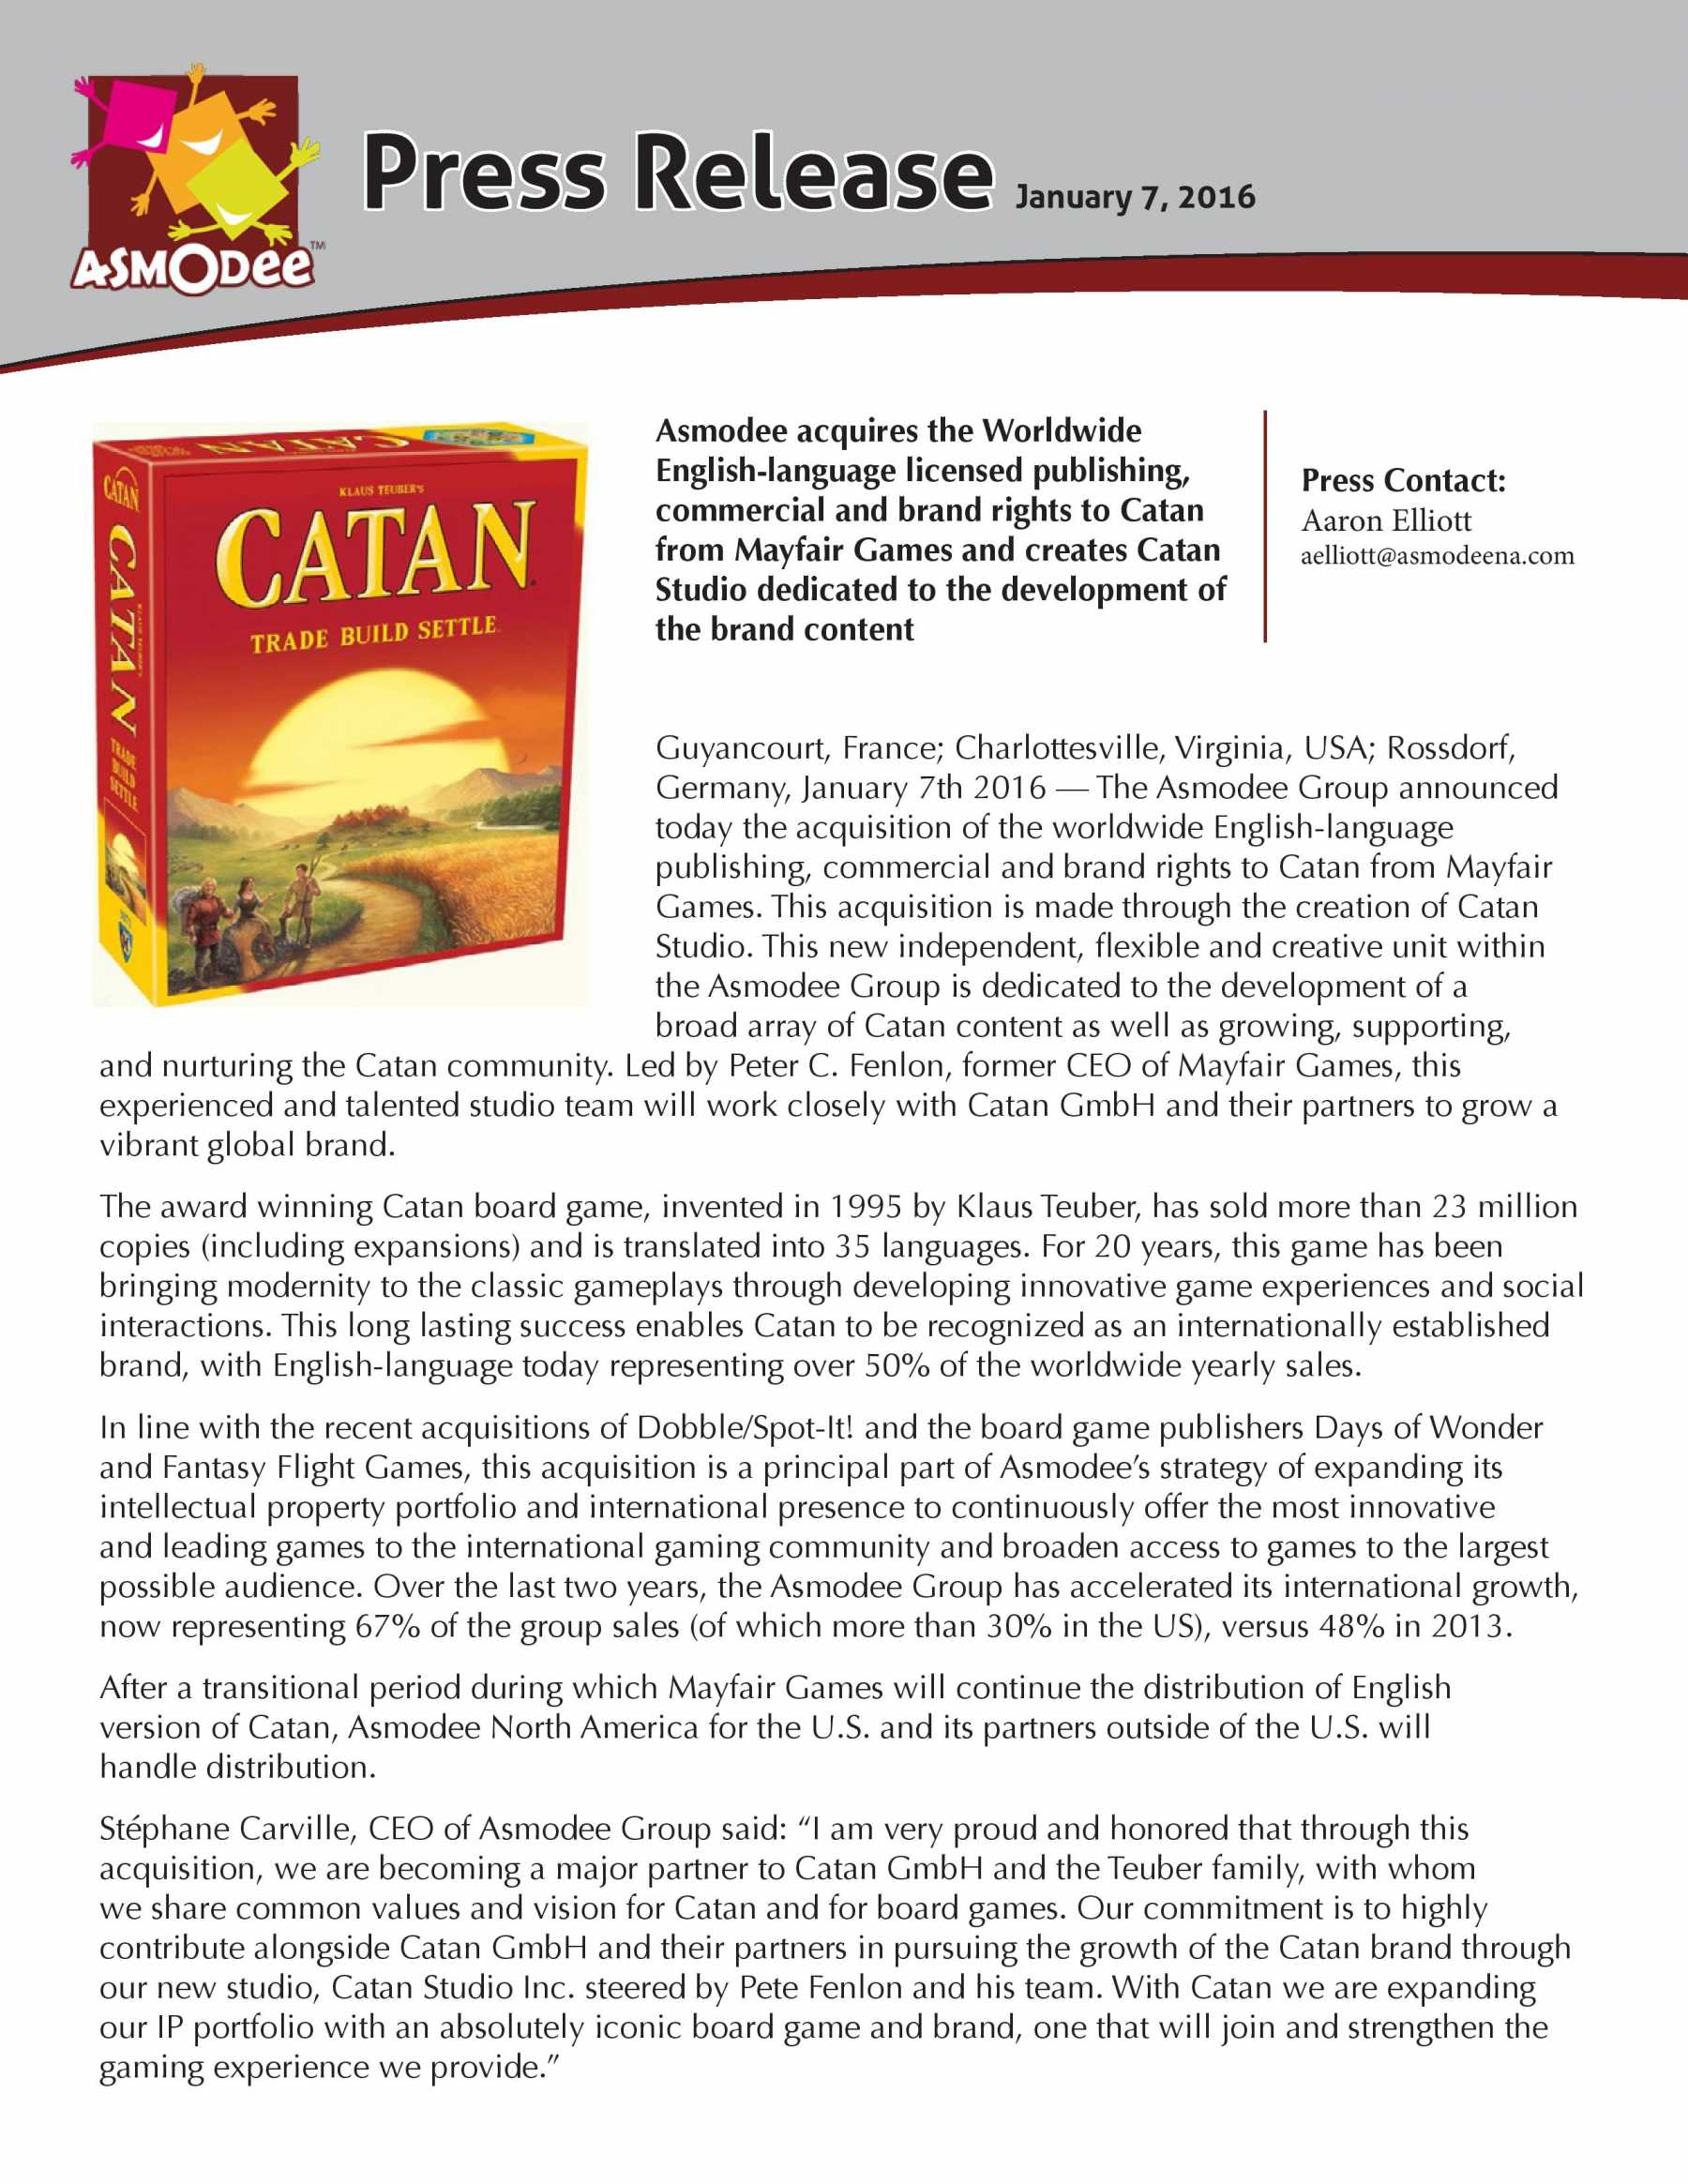 World-Famous Tabletop Game 'Catan' Has A New Home | Catan